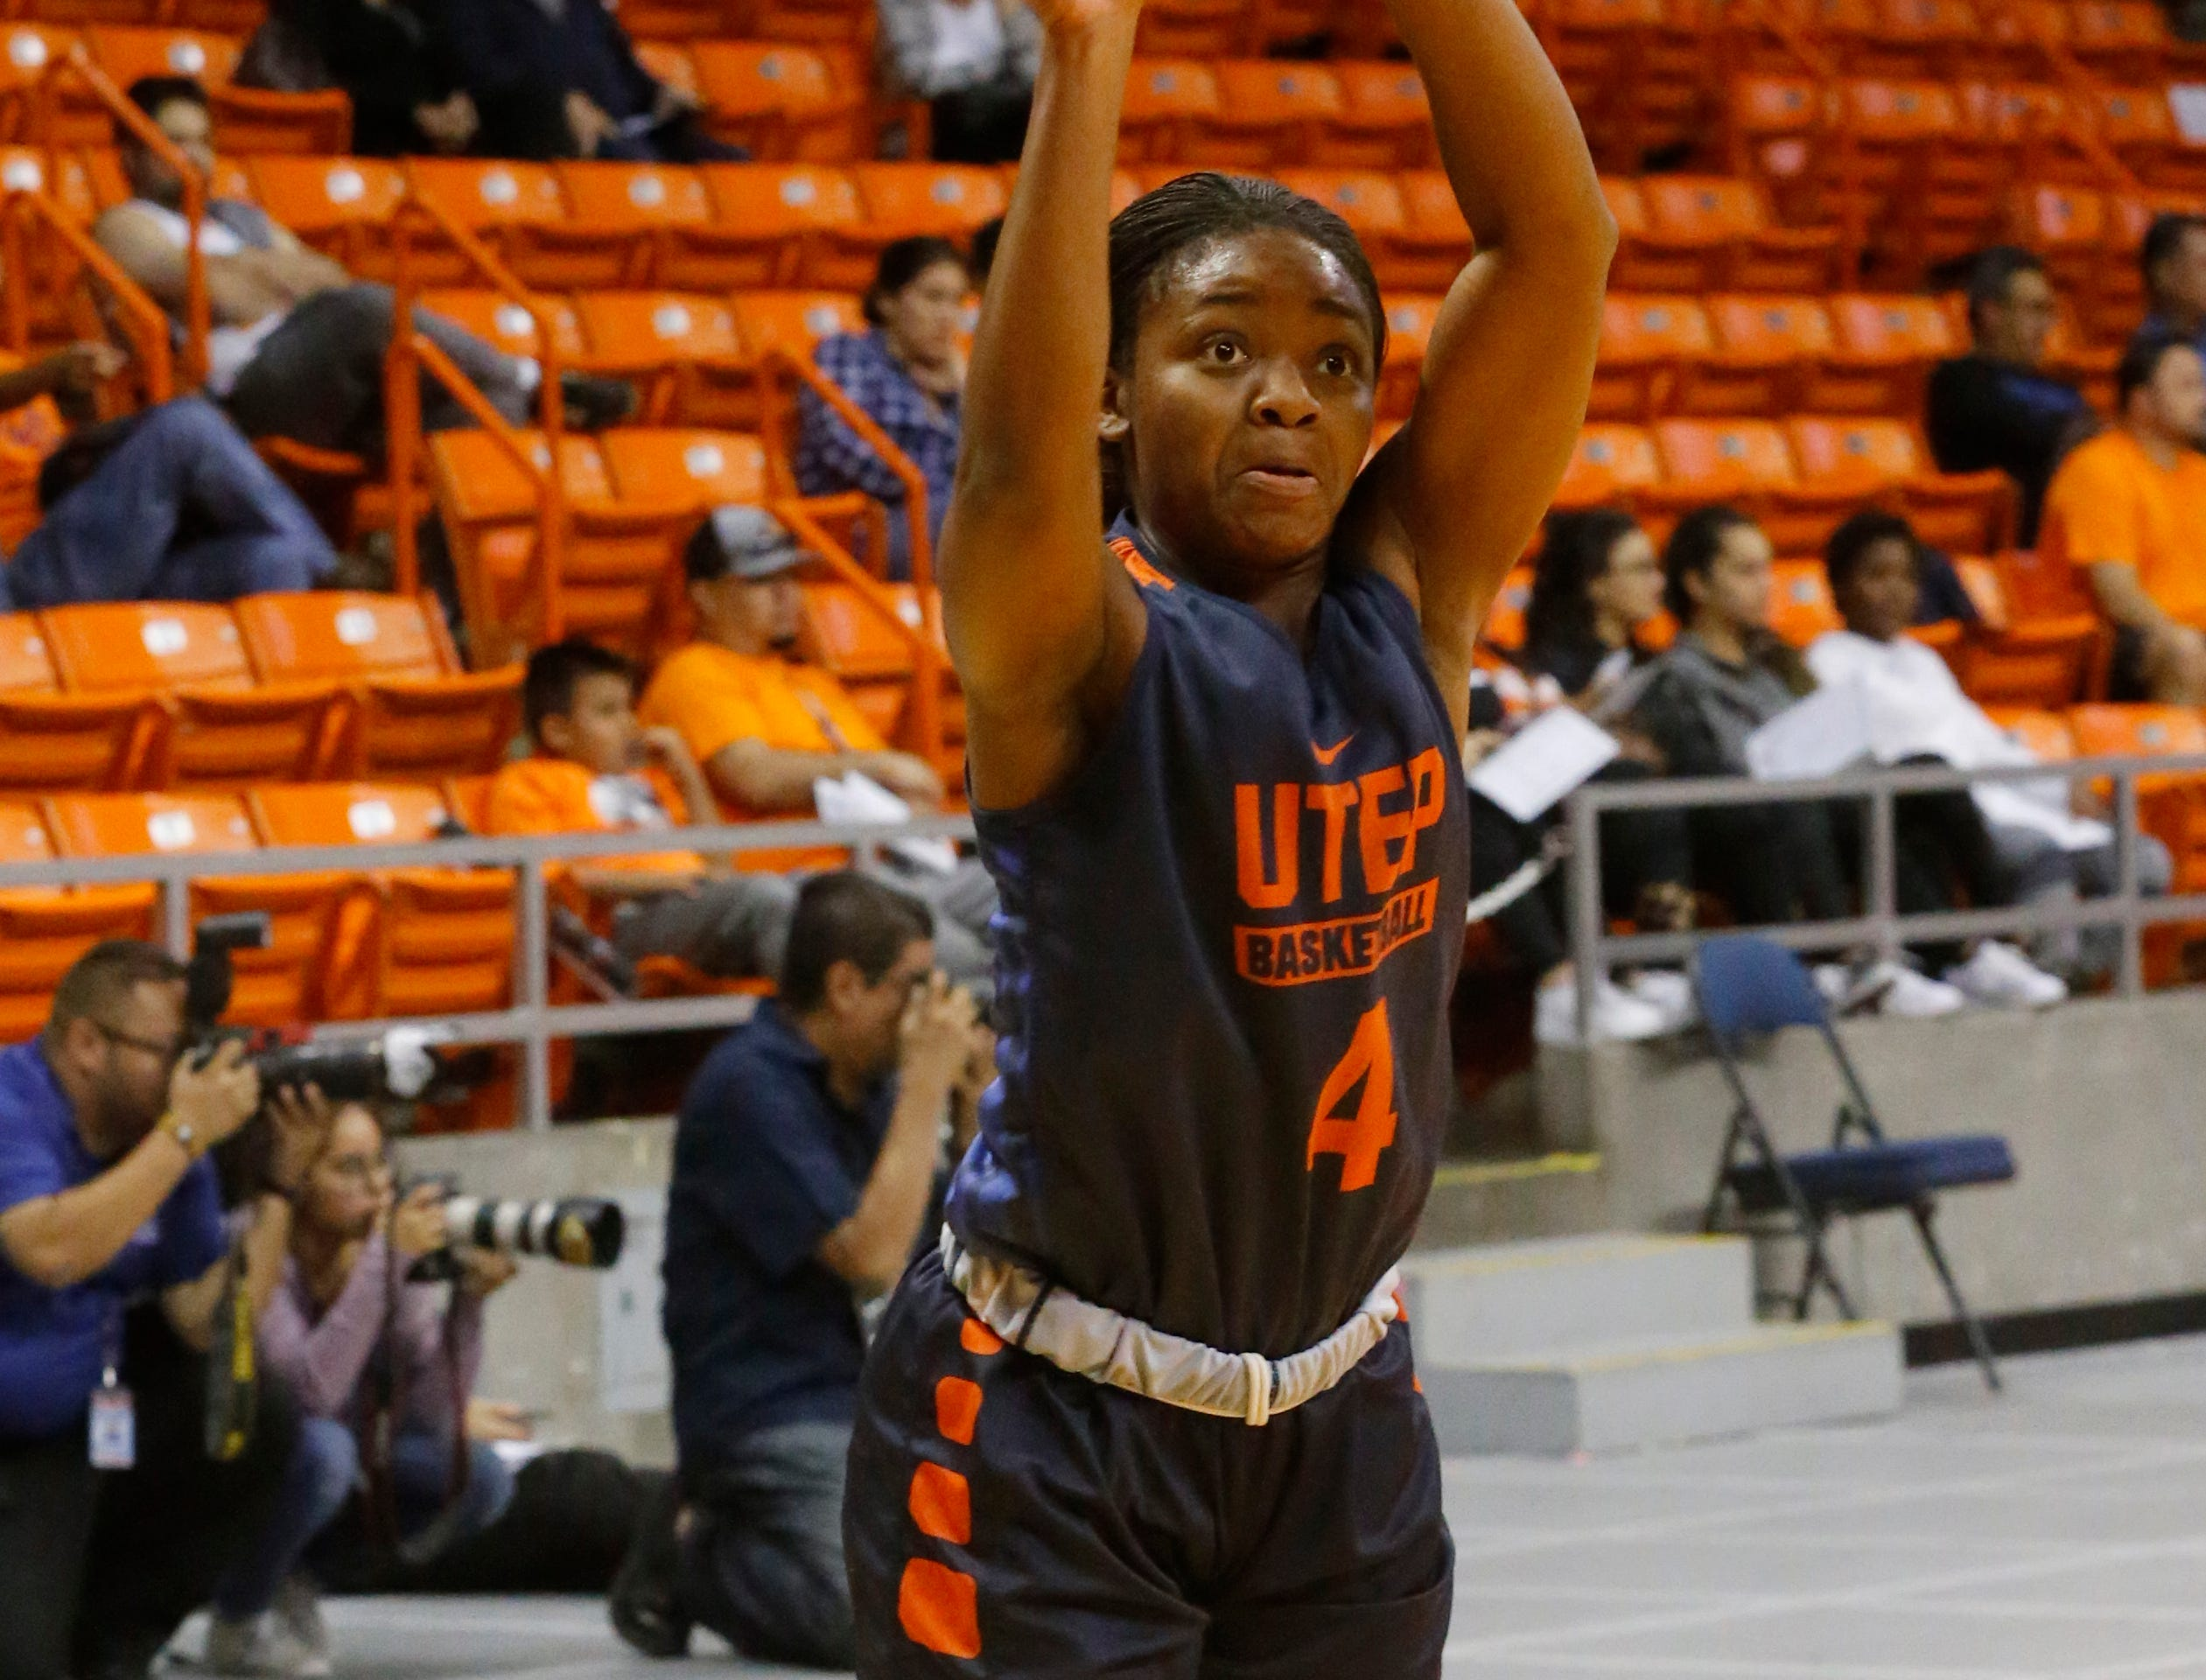 UTEP women's basketball team gave its hoops fans just a tease at Basketball Showcase Wednesday night